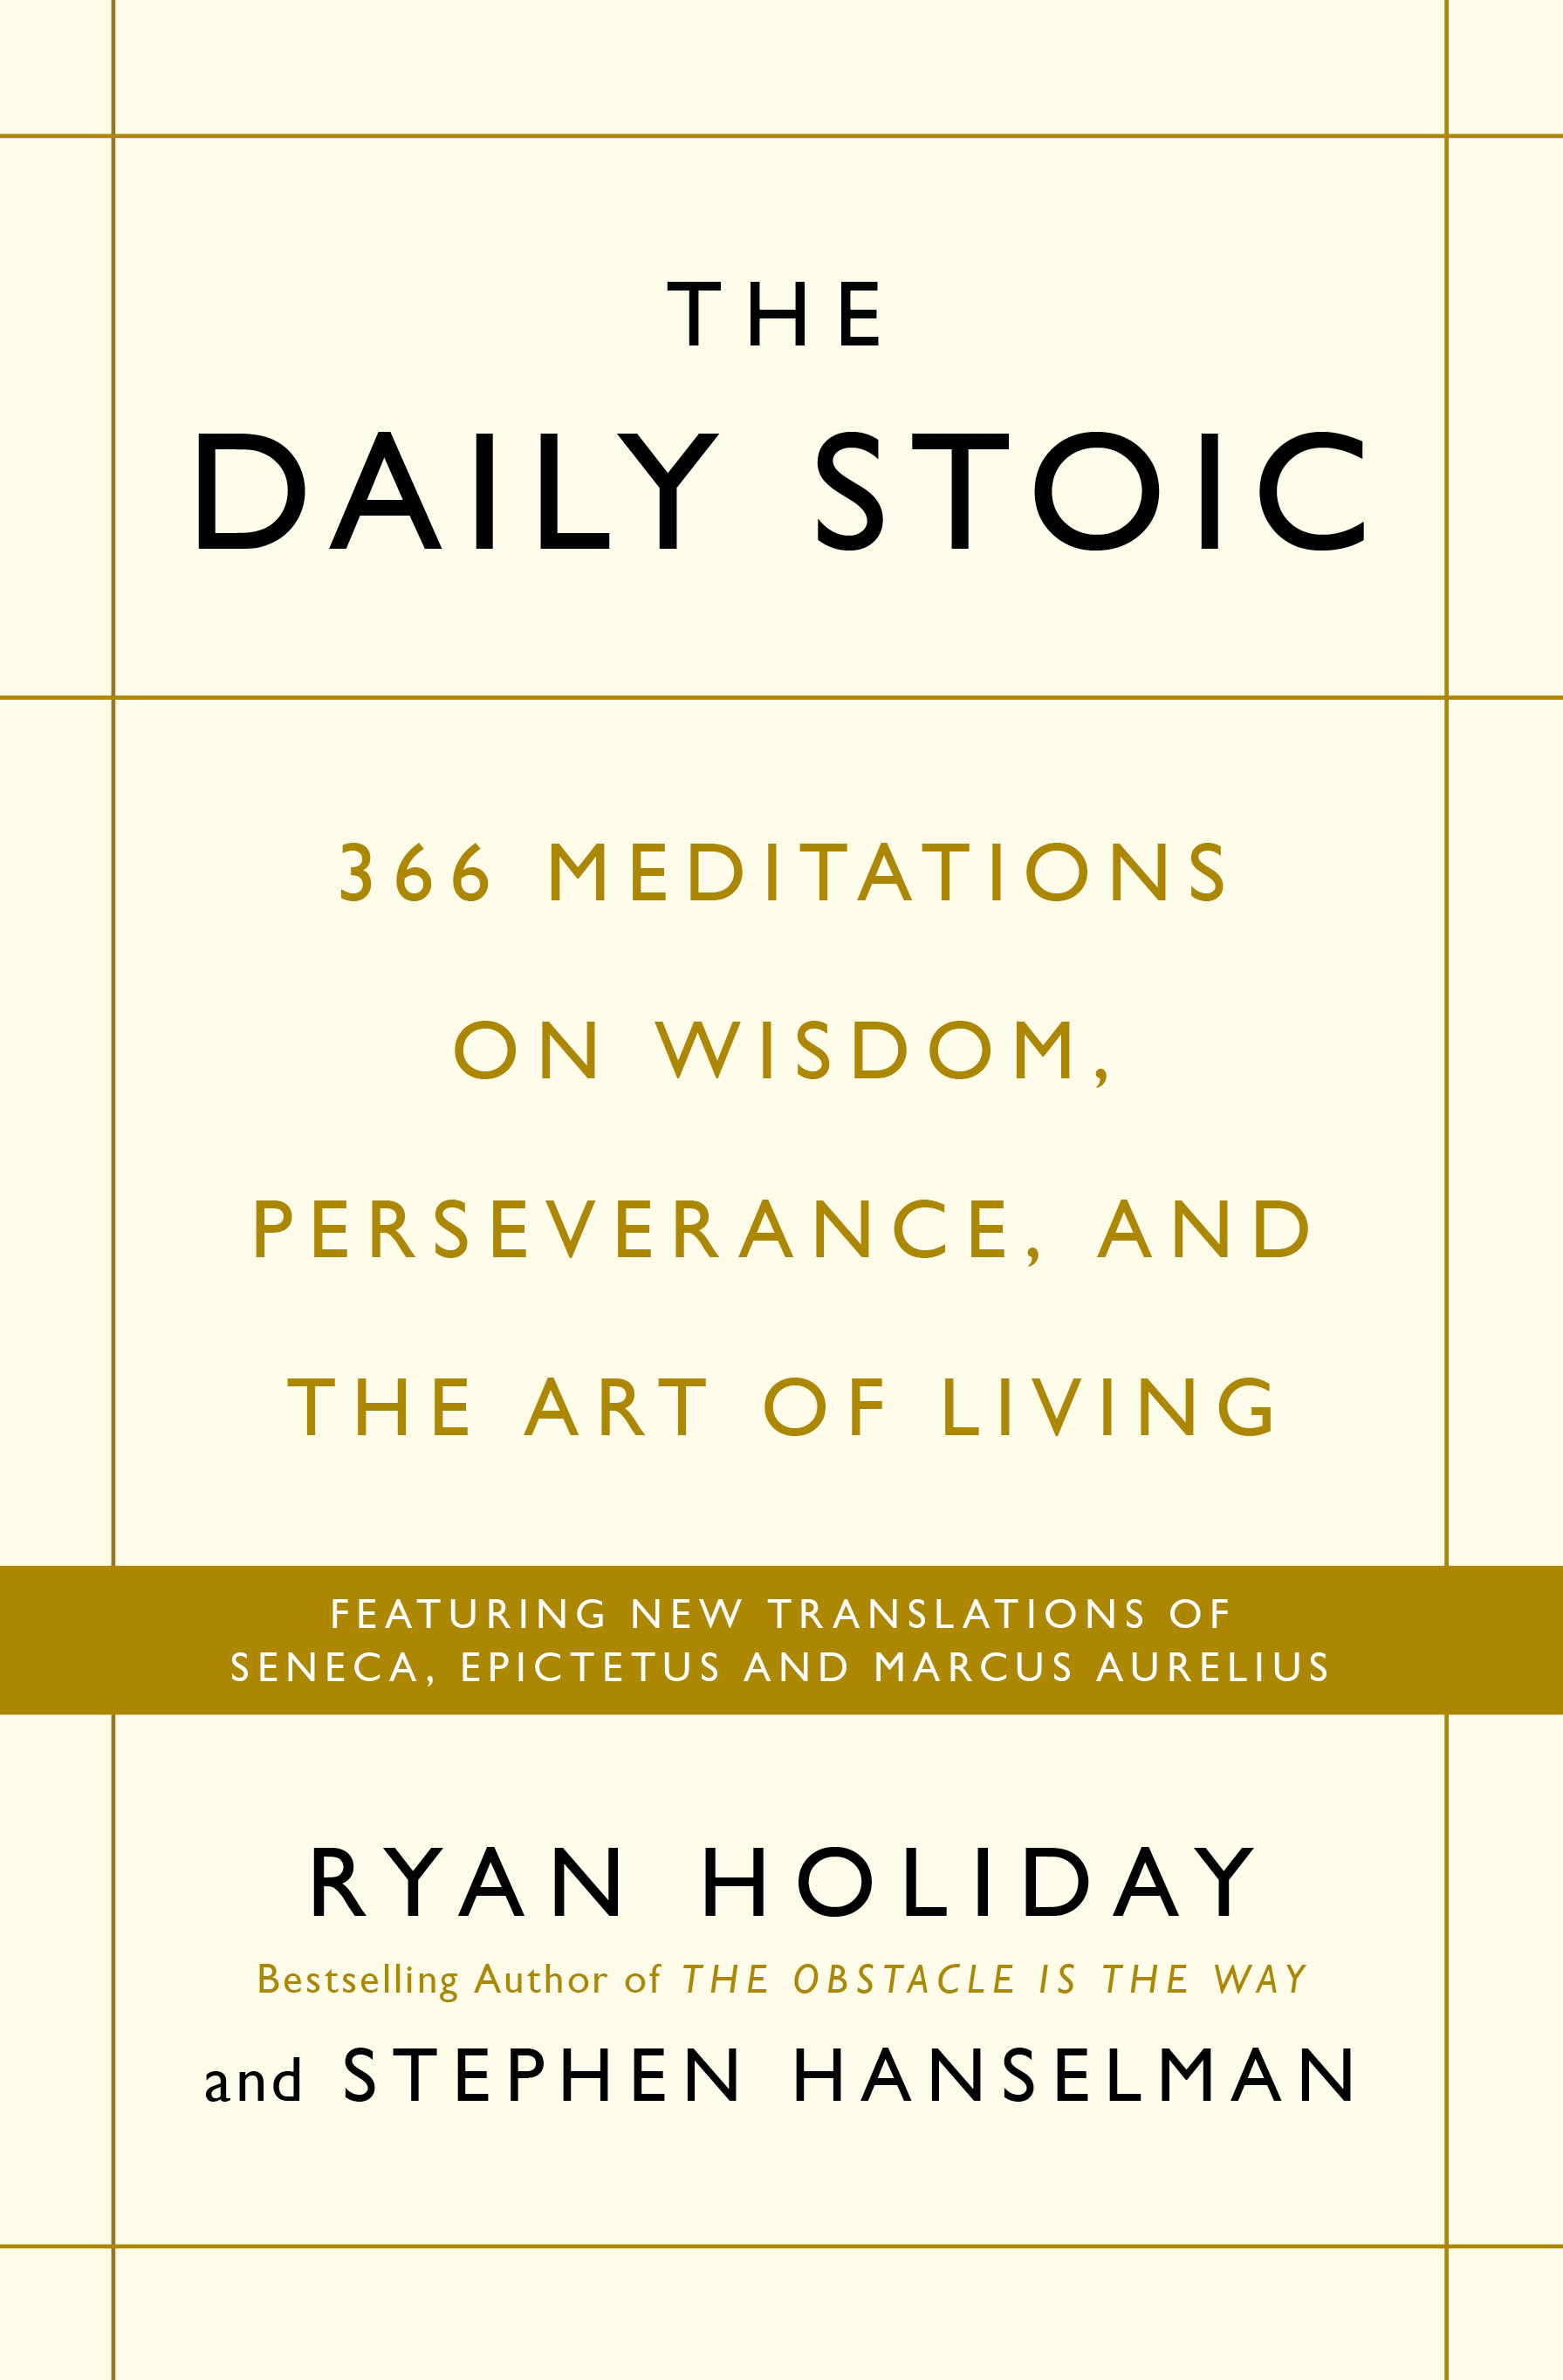 The Daily Stoic by Ryan Holiday And Stephen Hanselman, ISBN: 9781781257654